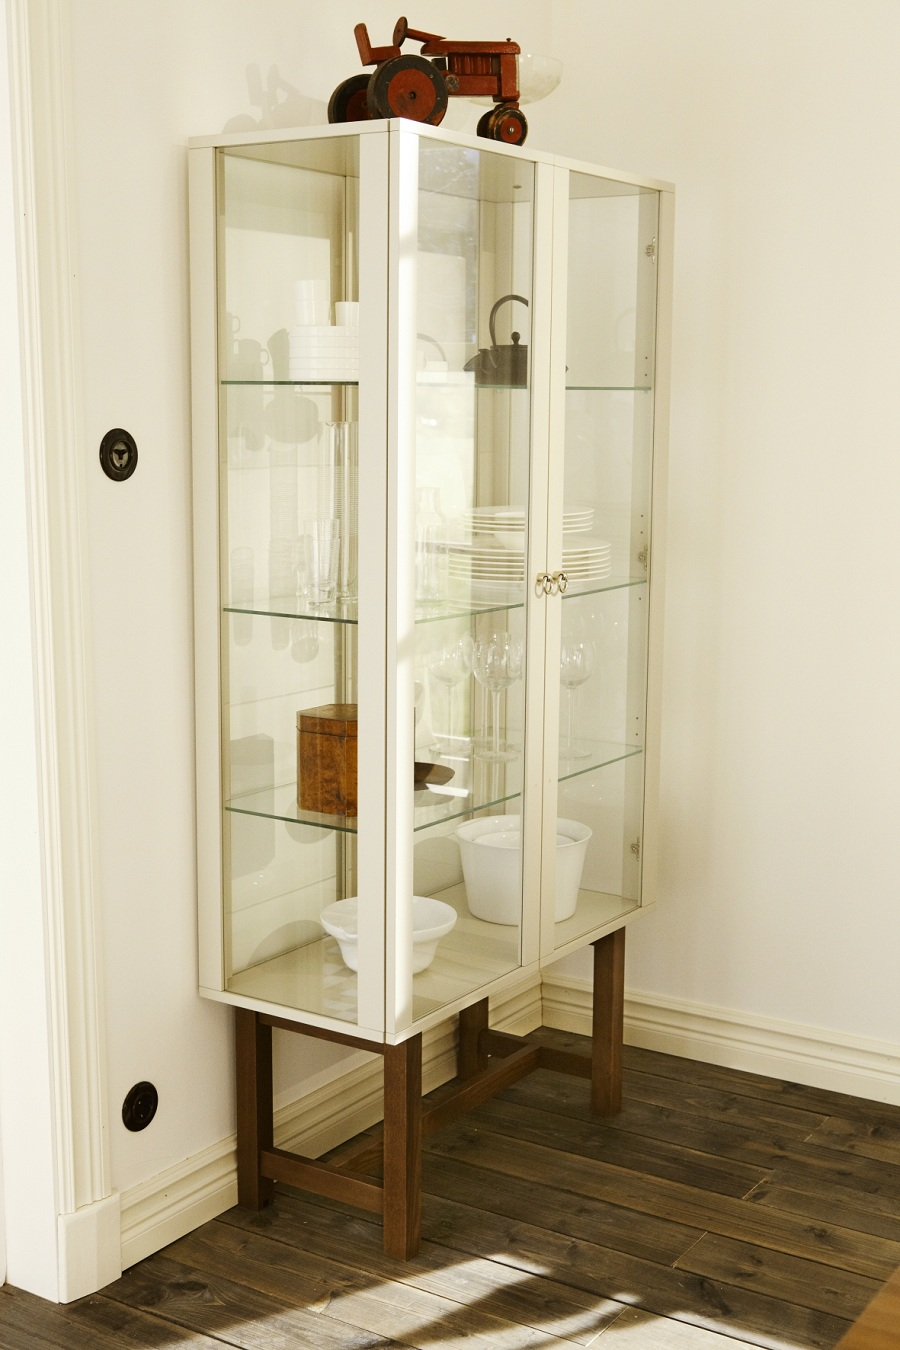 Ikea Vitrine 2 Pictures to pin on Pinterest